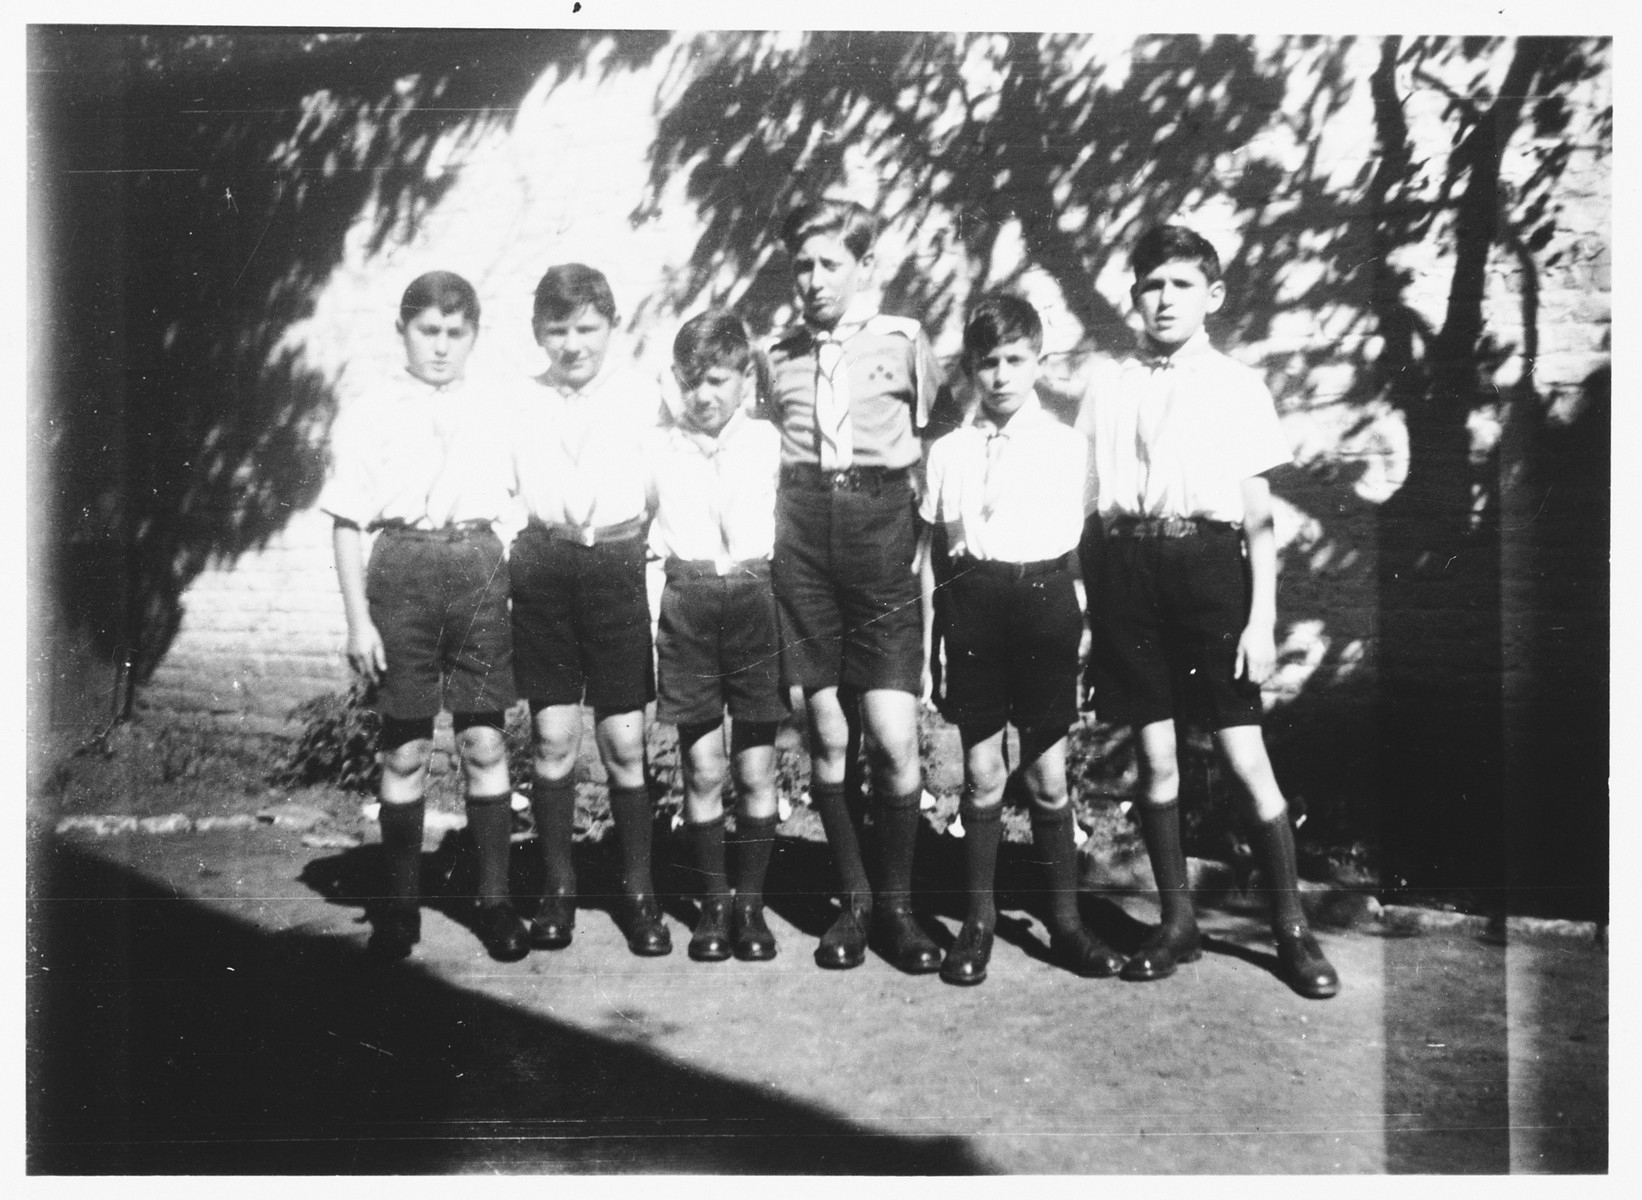 Group portrait of members of the Aryeh youth group at the Orphelinat Israelite de Bruxelles children's home of the rue des Patriotes.  Among those pictured are: Henri, Walter Mendler, Joseph Birnbaum, Joseph Amsel and David.